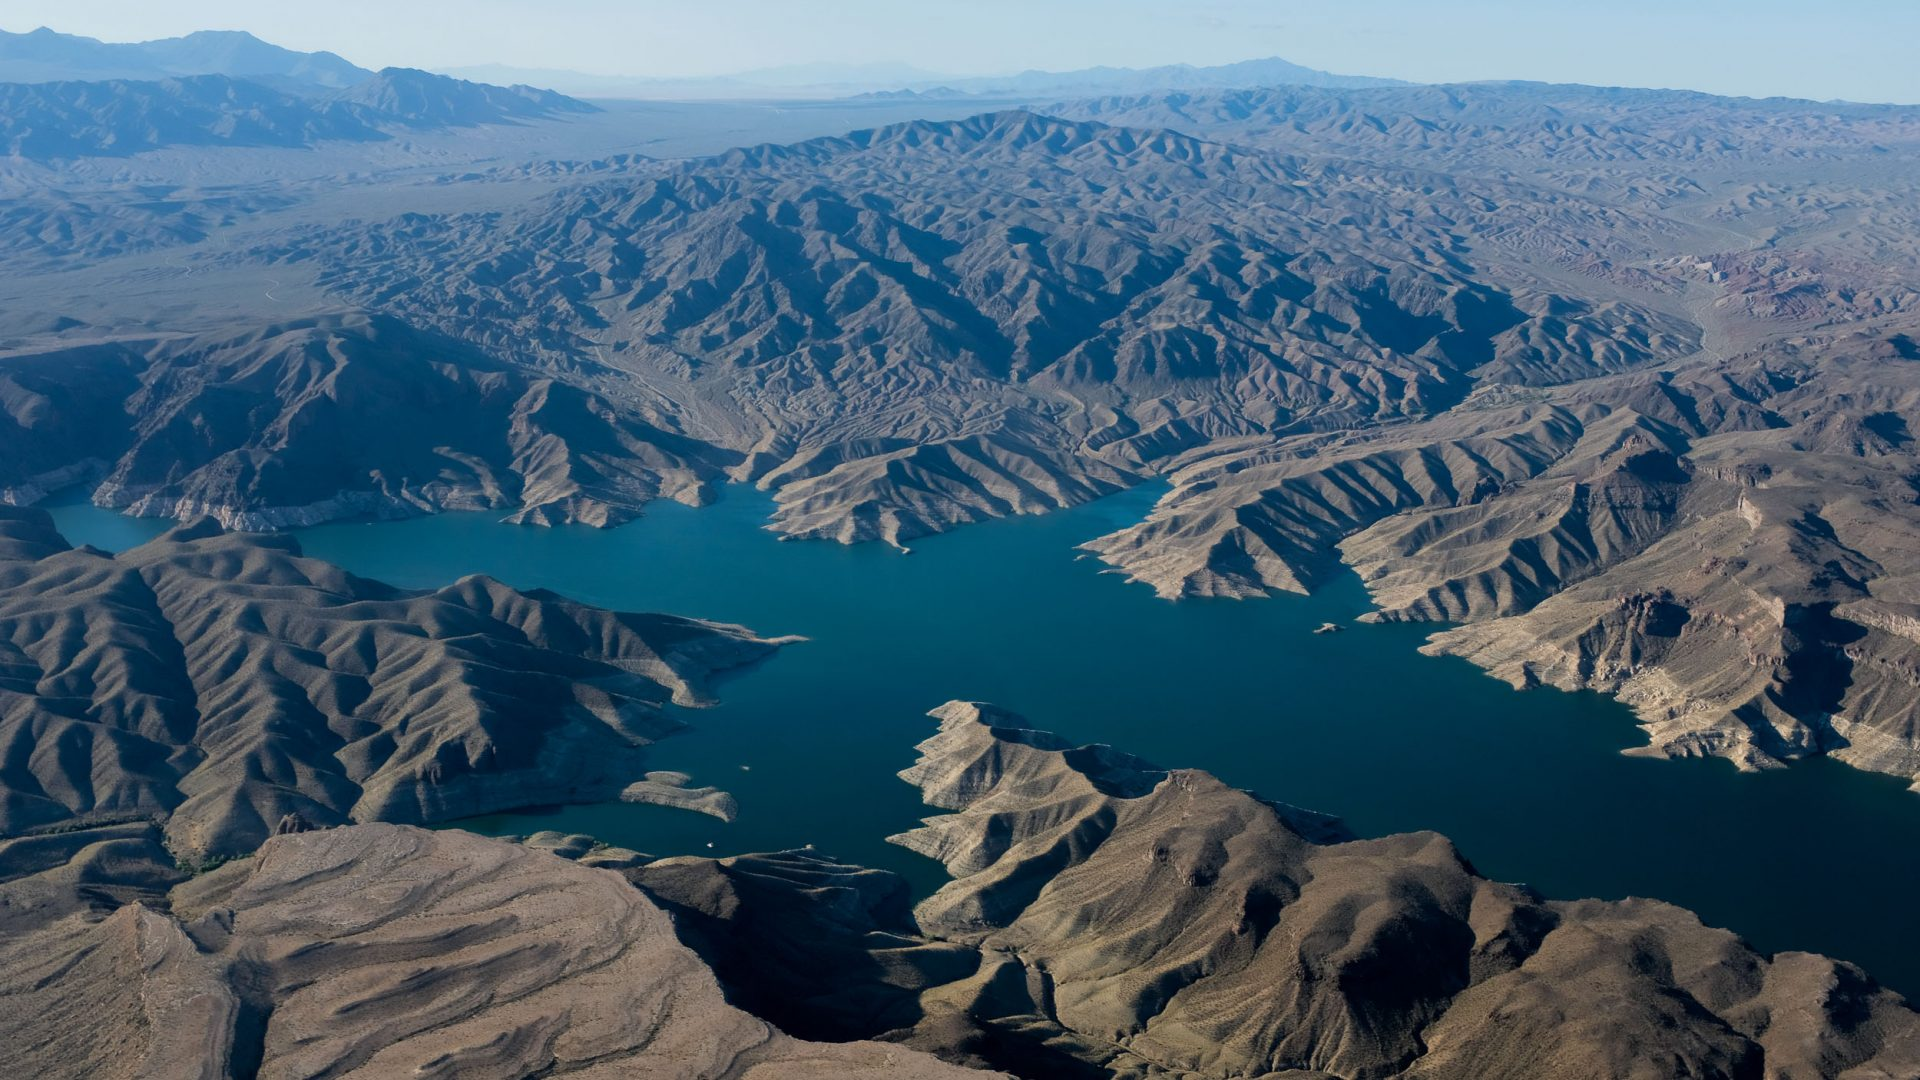 The view over Lake Mead from Papillon Grand Canyon Helicopters, Nevada.